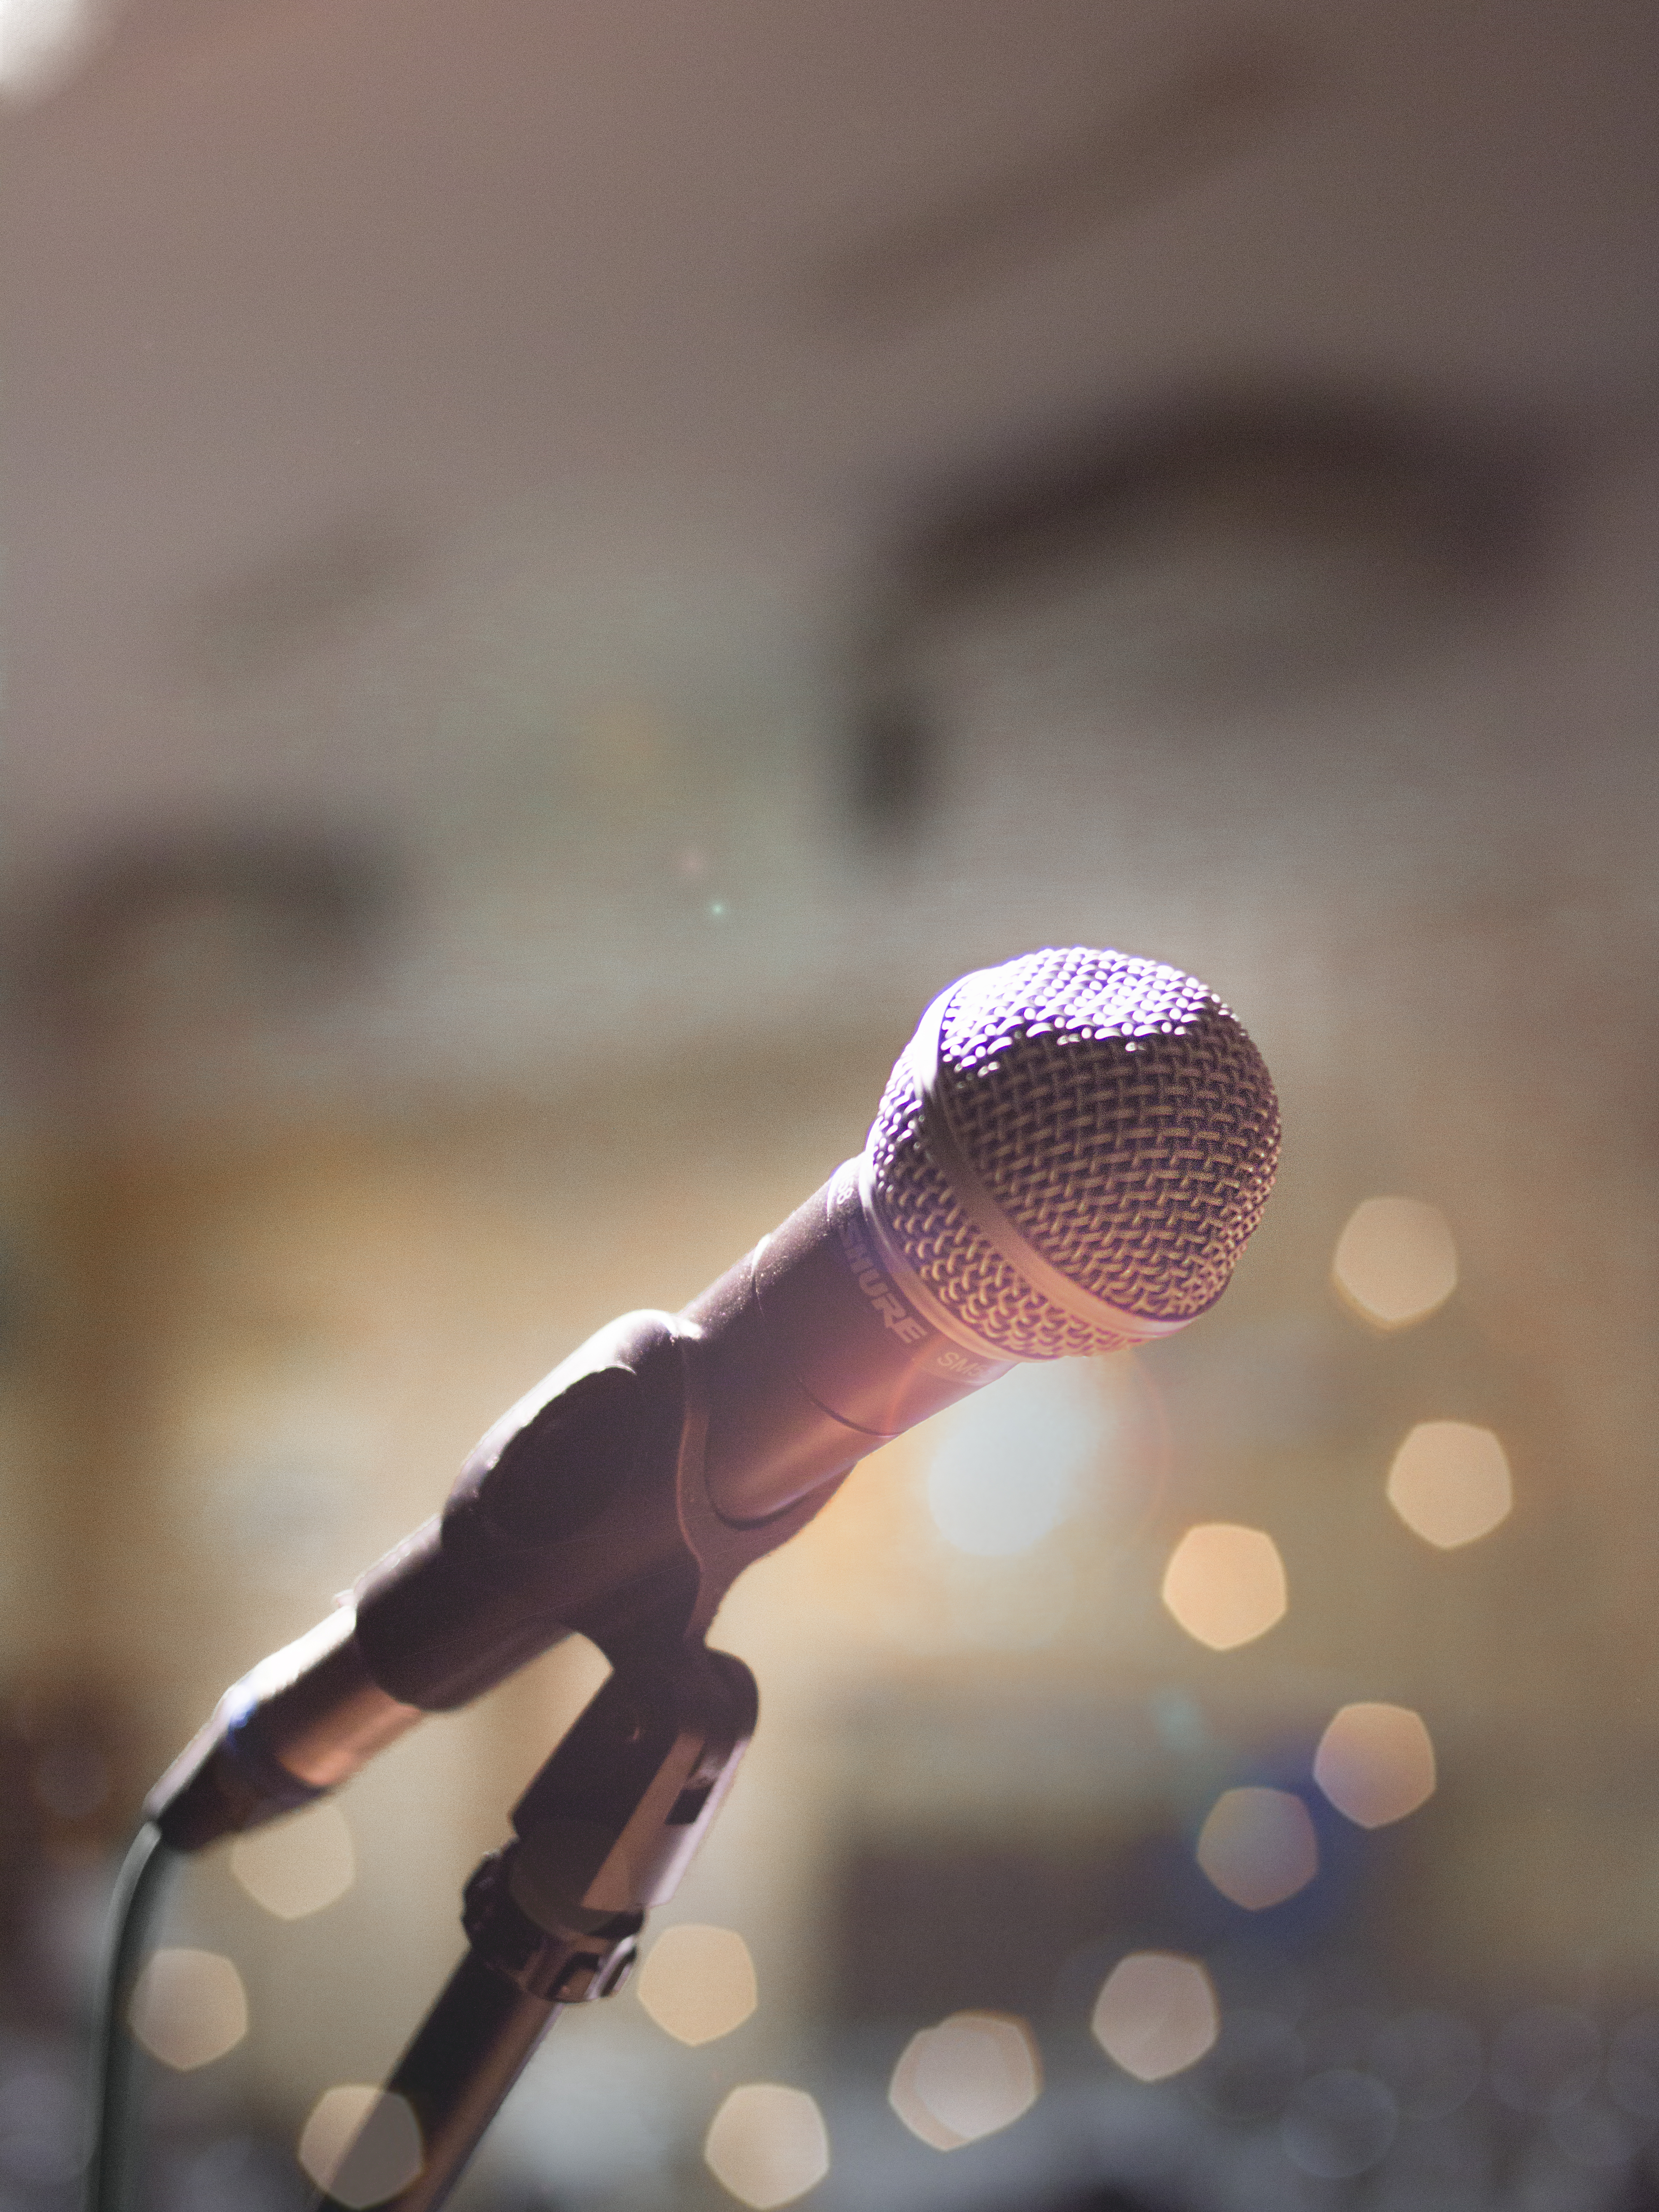 Iphone X 4k Wallpaper Hd Person Holding Microphone 183 Free Stock Photo